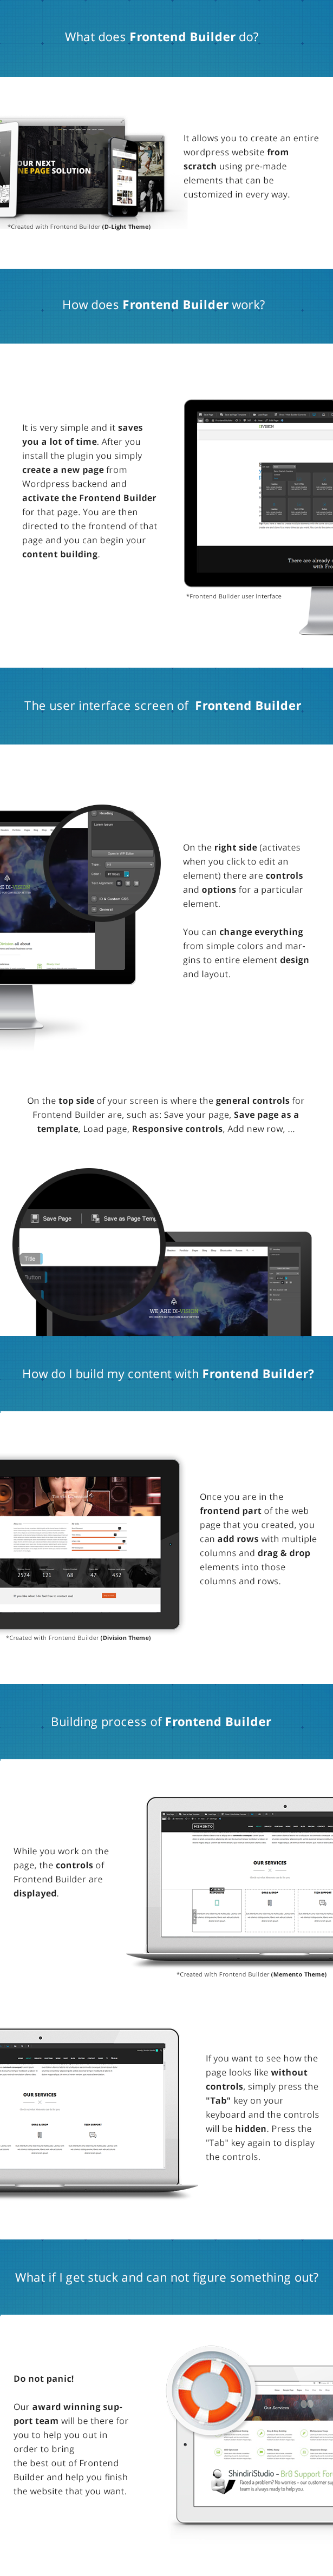 Frontend Builder - WordPress Content Assembler, Page Builder & Drag & Drop Page Composer - 1